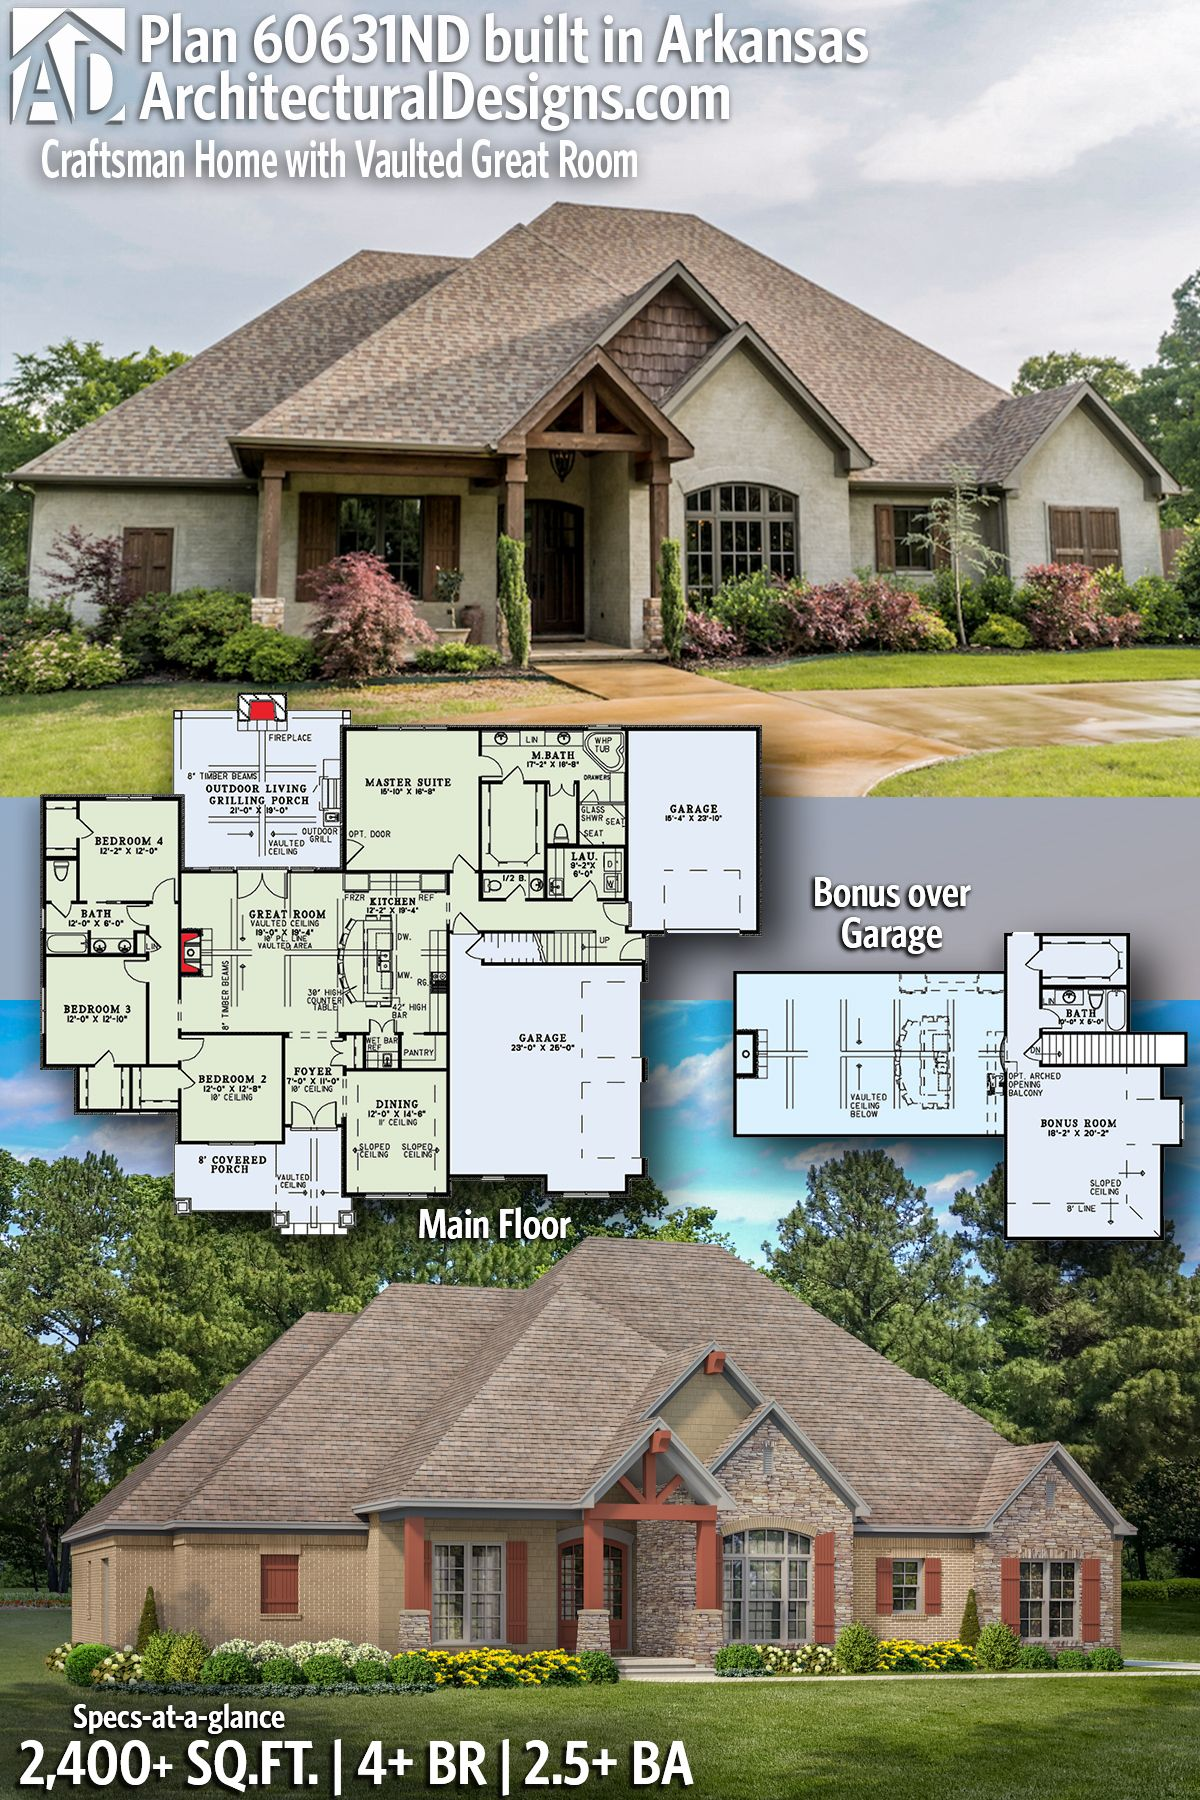 Architectural Designs House Plan 60631ND shown built